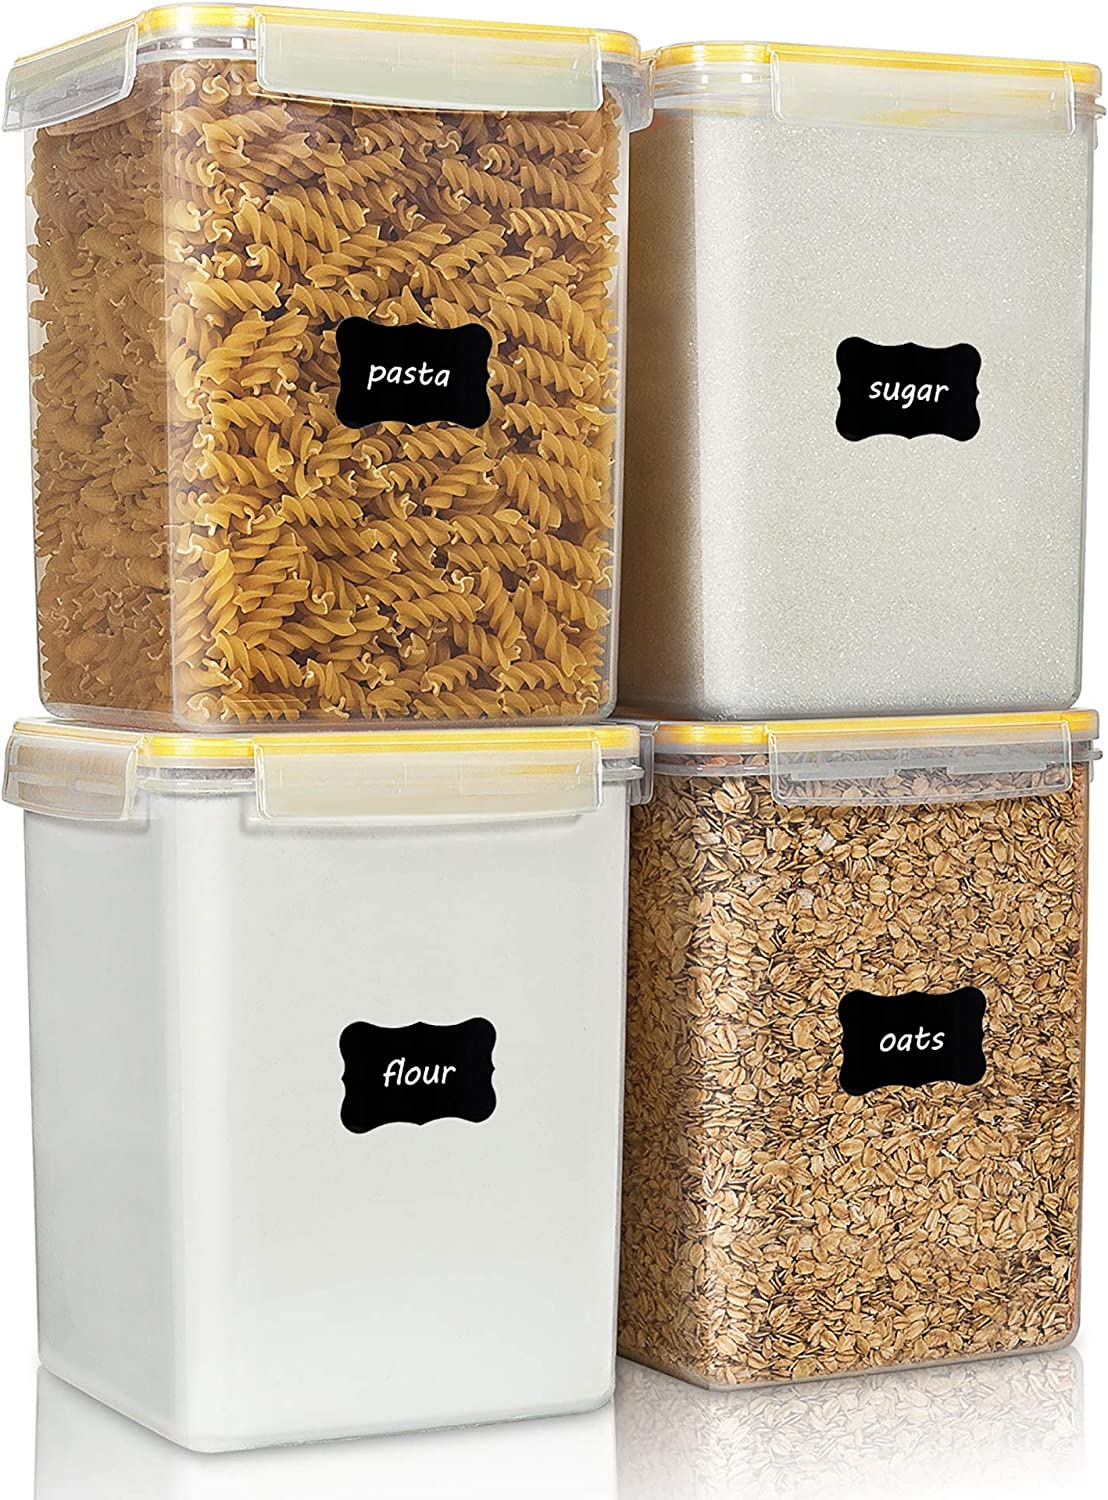 Large Food Storage Containers 5.2L / 176oz, Vtopmart 4 Pieces BPA Free Plastic Airtight Food Storage Containers for Flour, Sugar, Baking Supplies, with 4 Measuring Cups and 24 Labels, Yellow